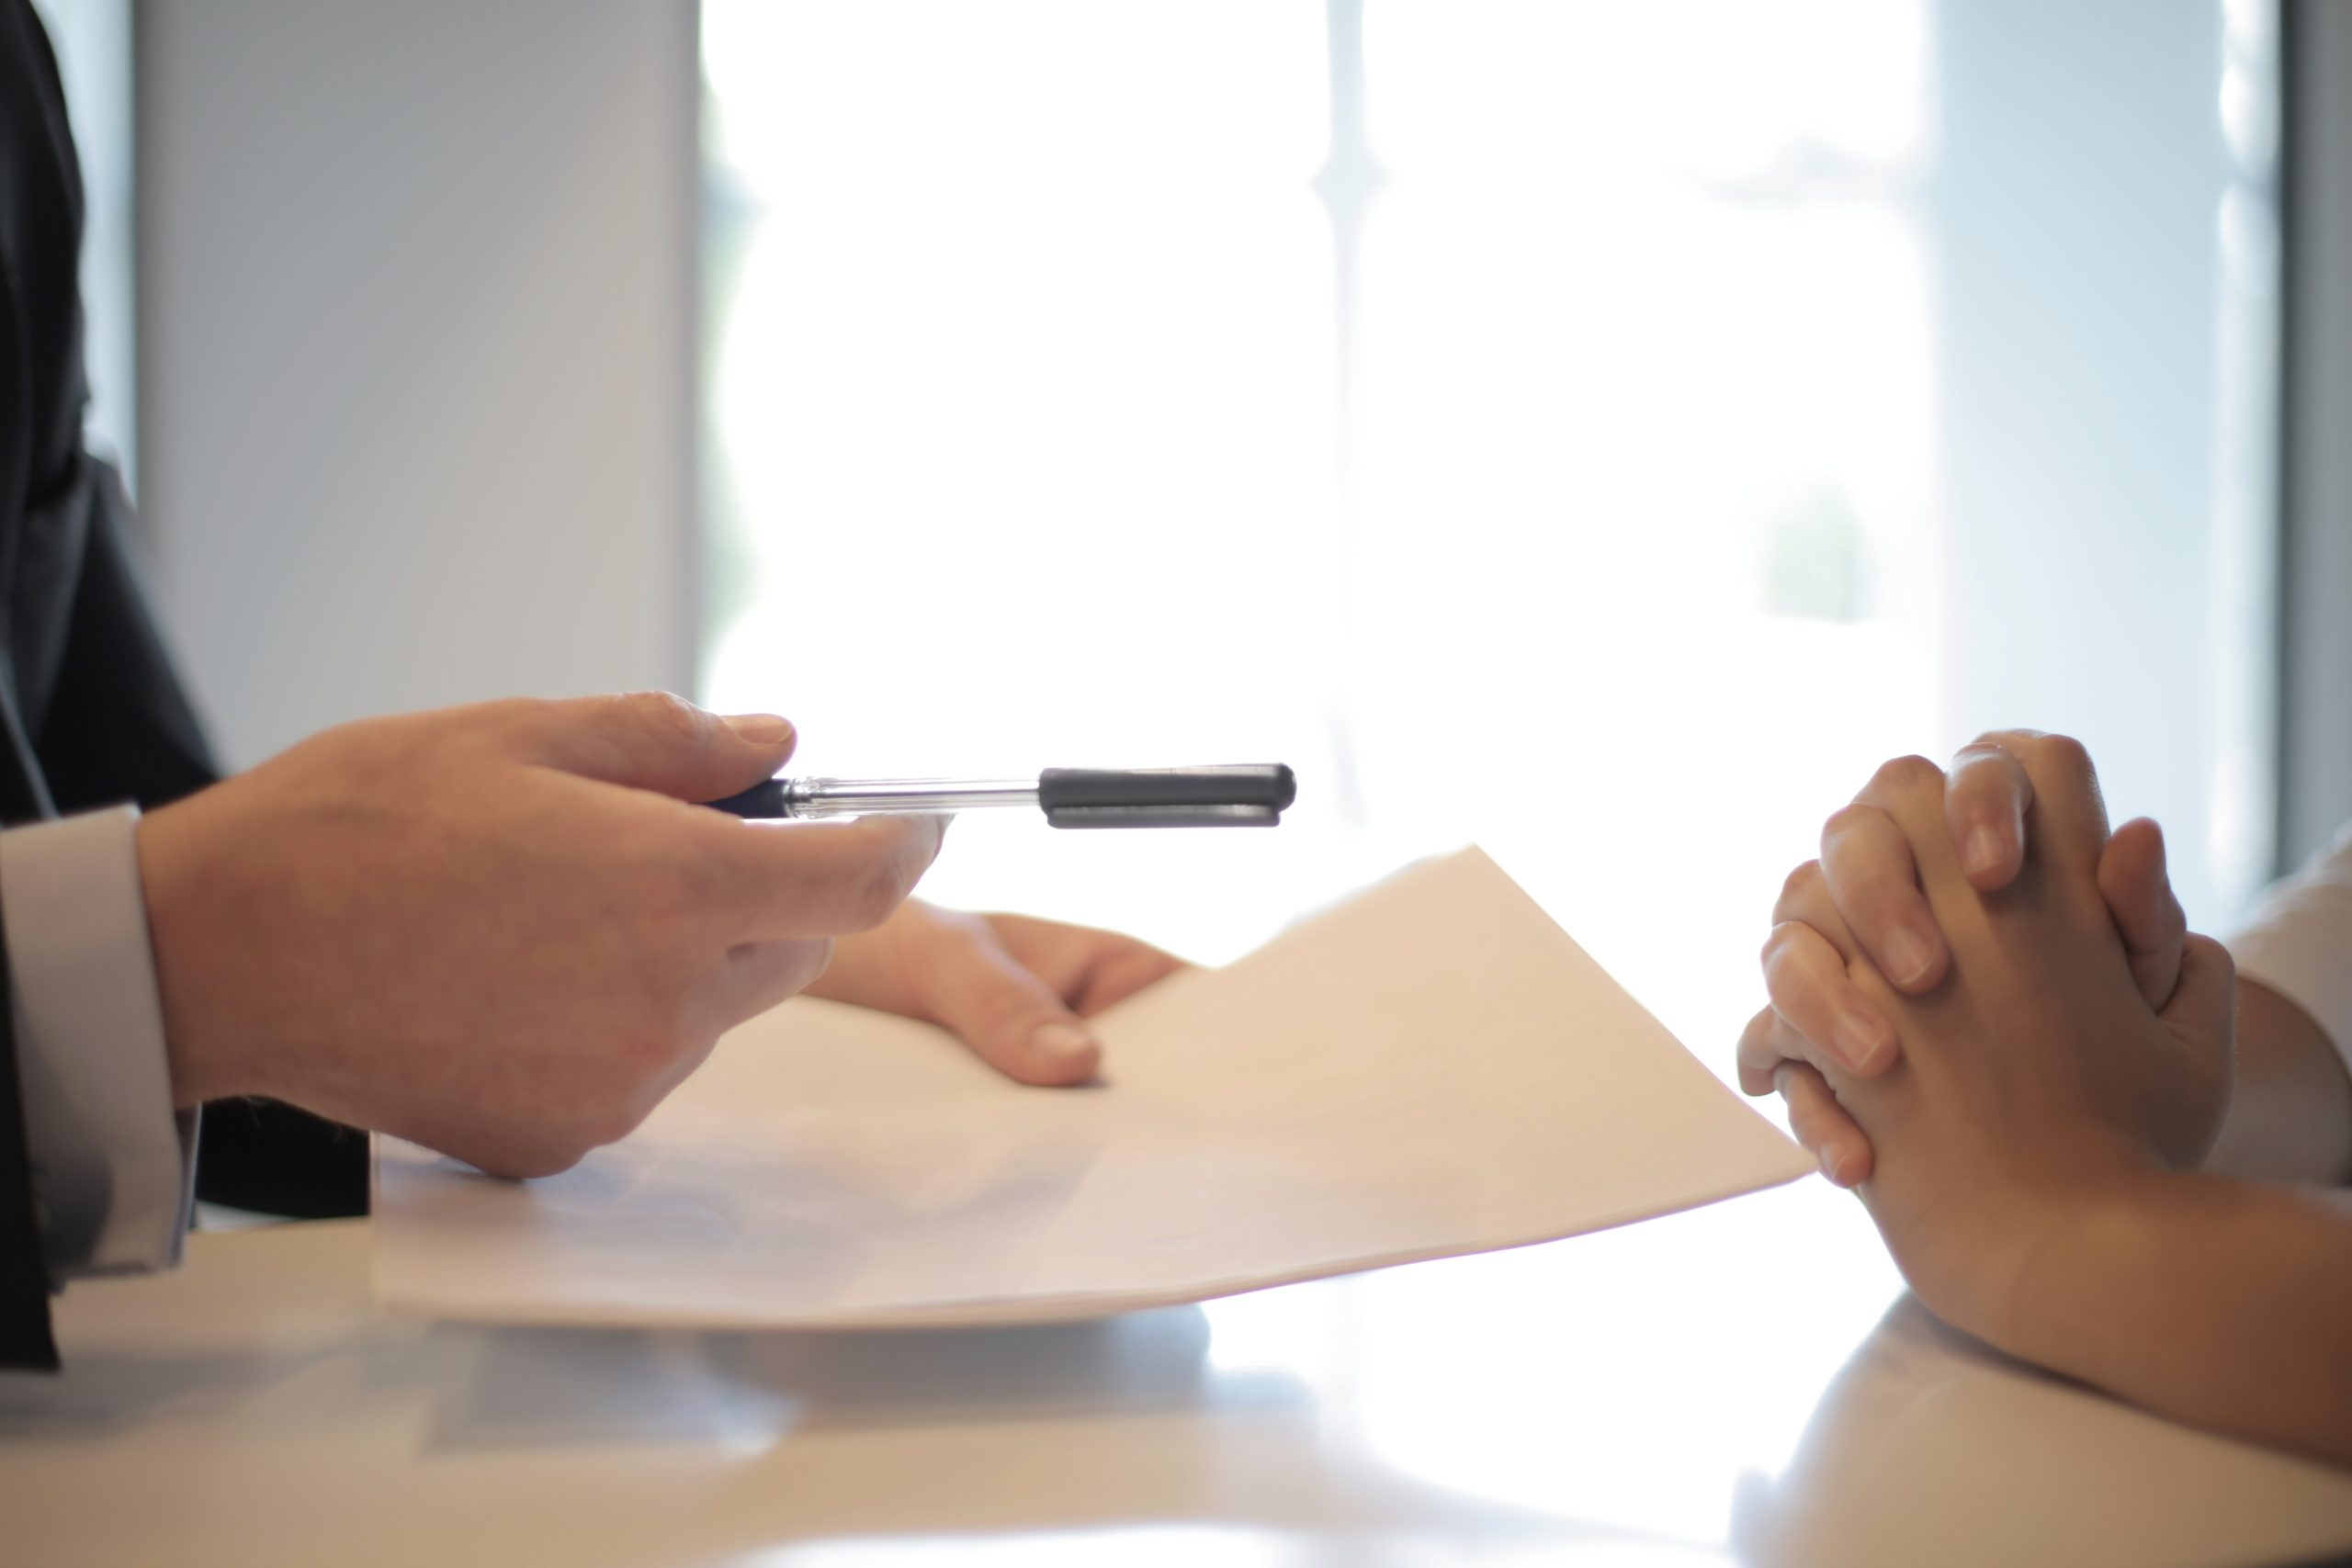 Do I have any post-engagement obligations as an independent contractor?